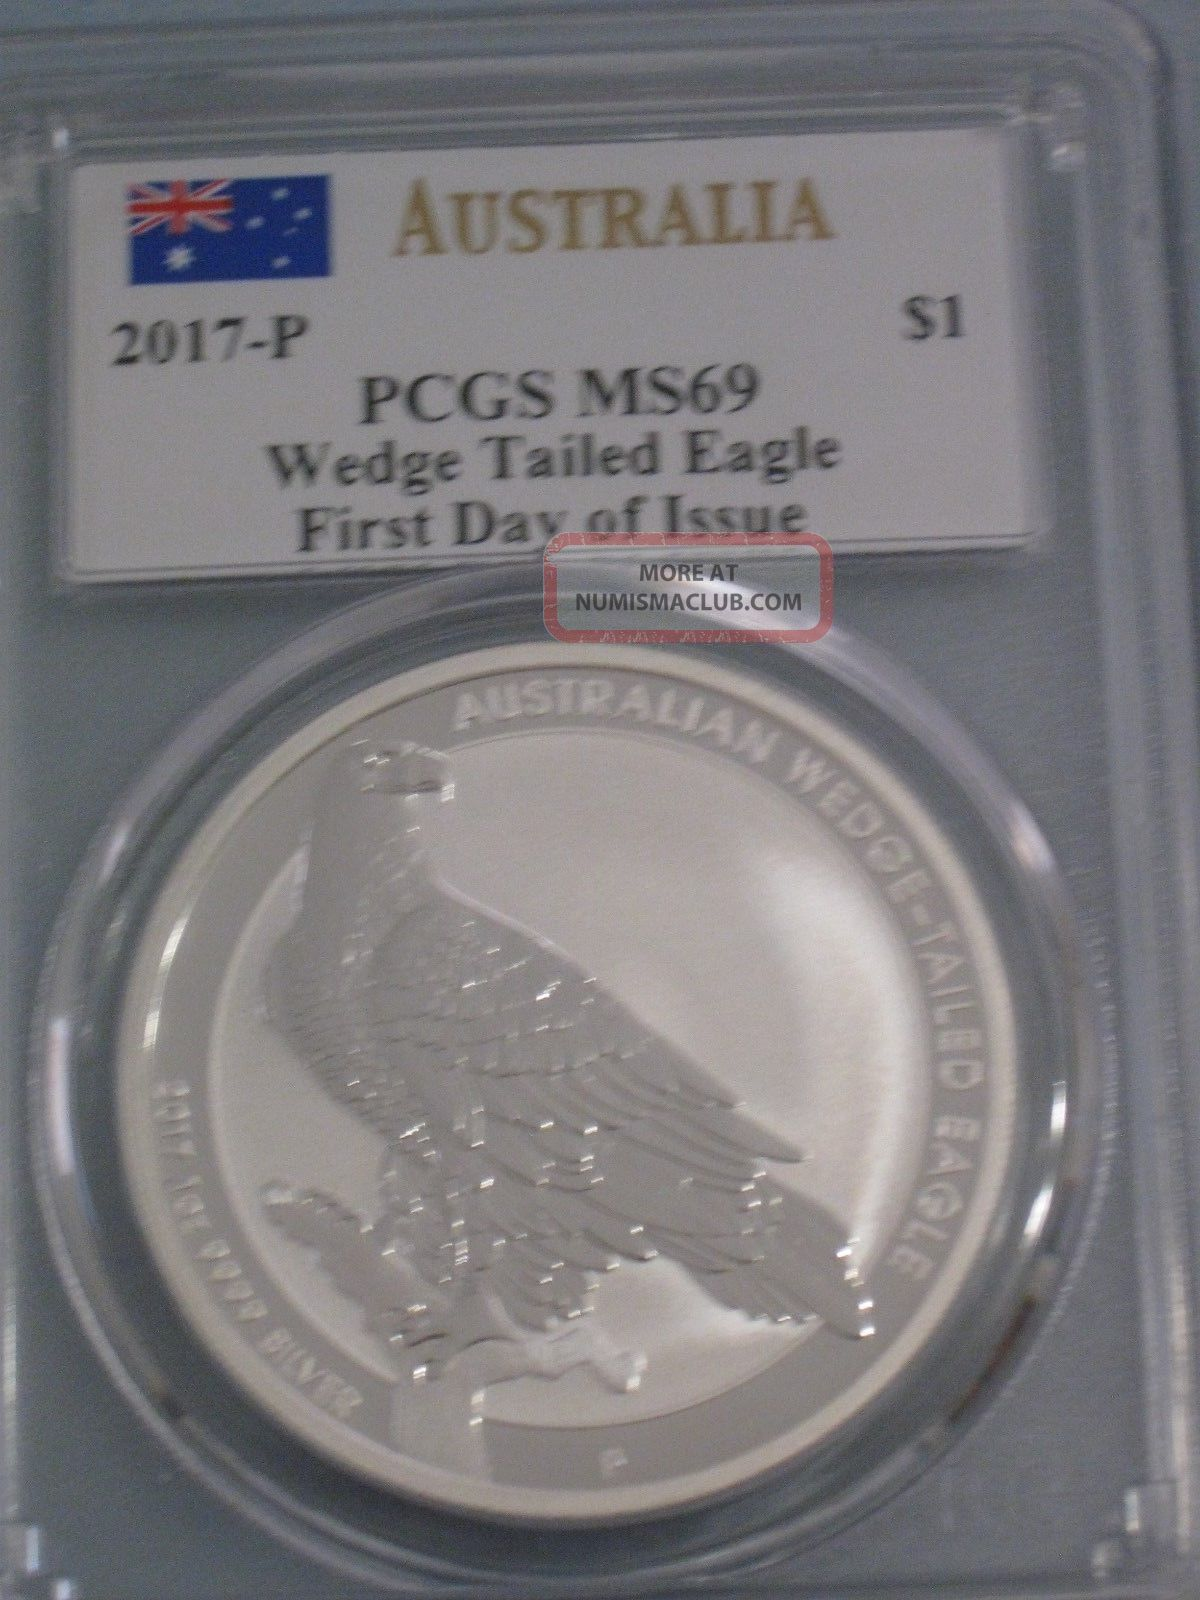 2017 P Australia Wedge Tailed Eagle Pcgs Ms 69 F D O